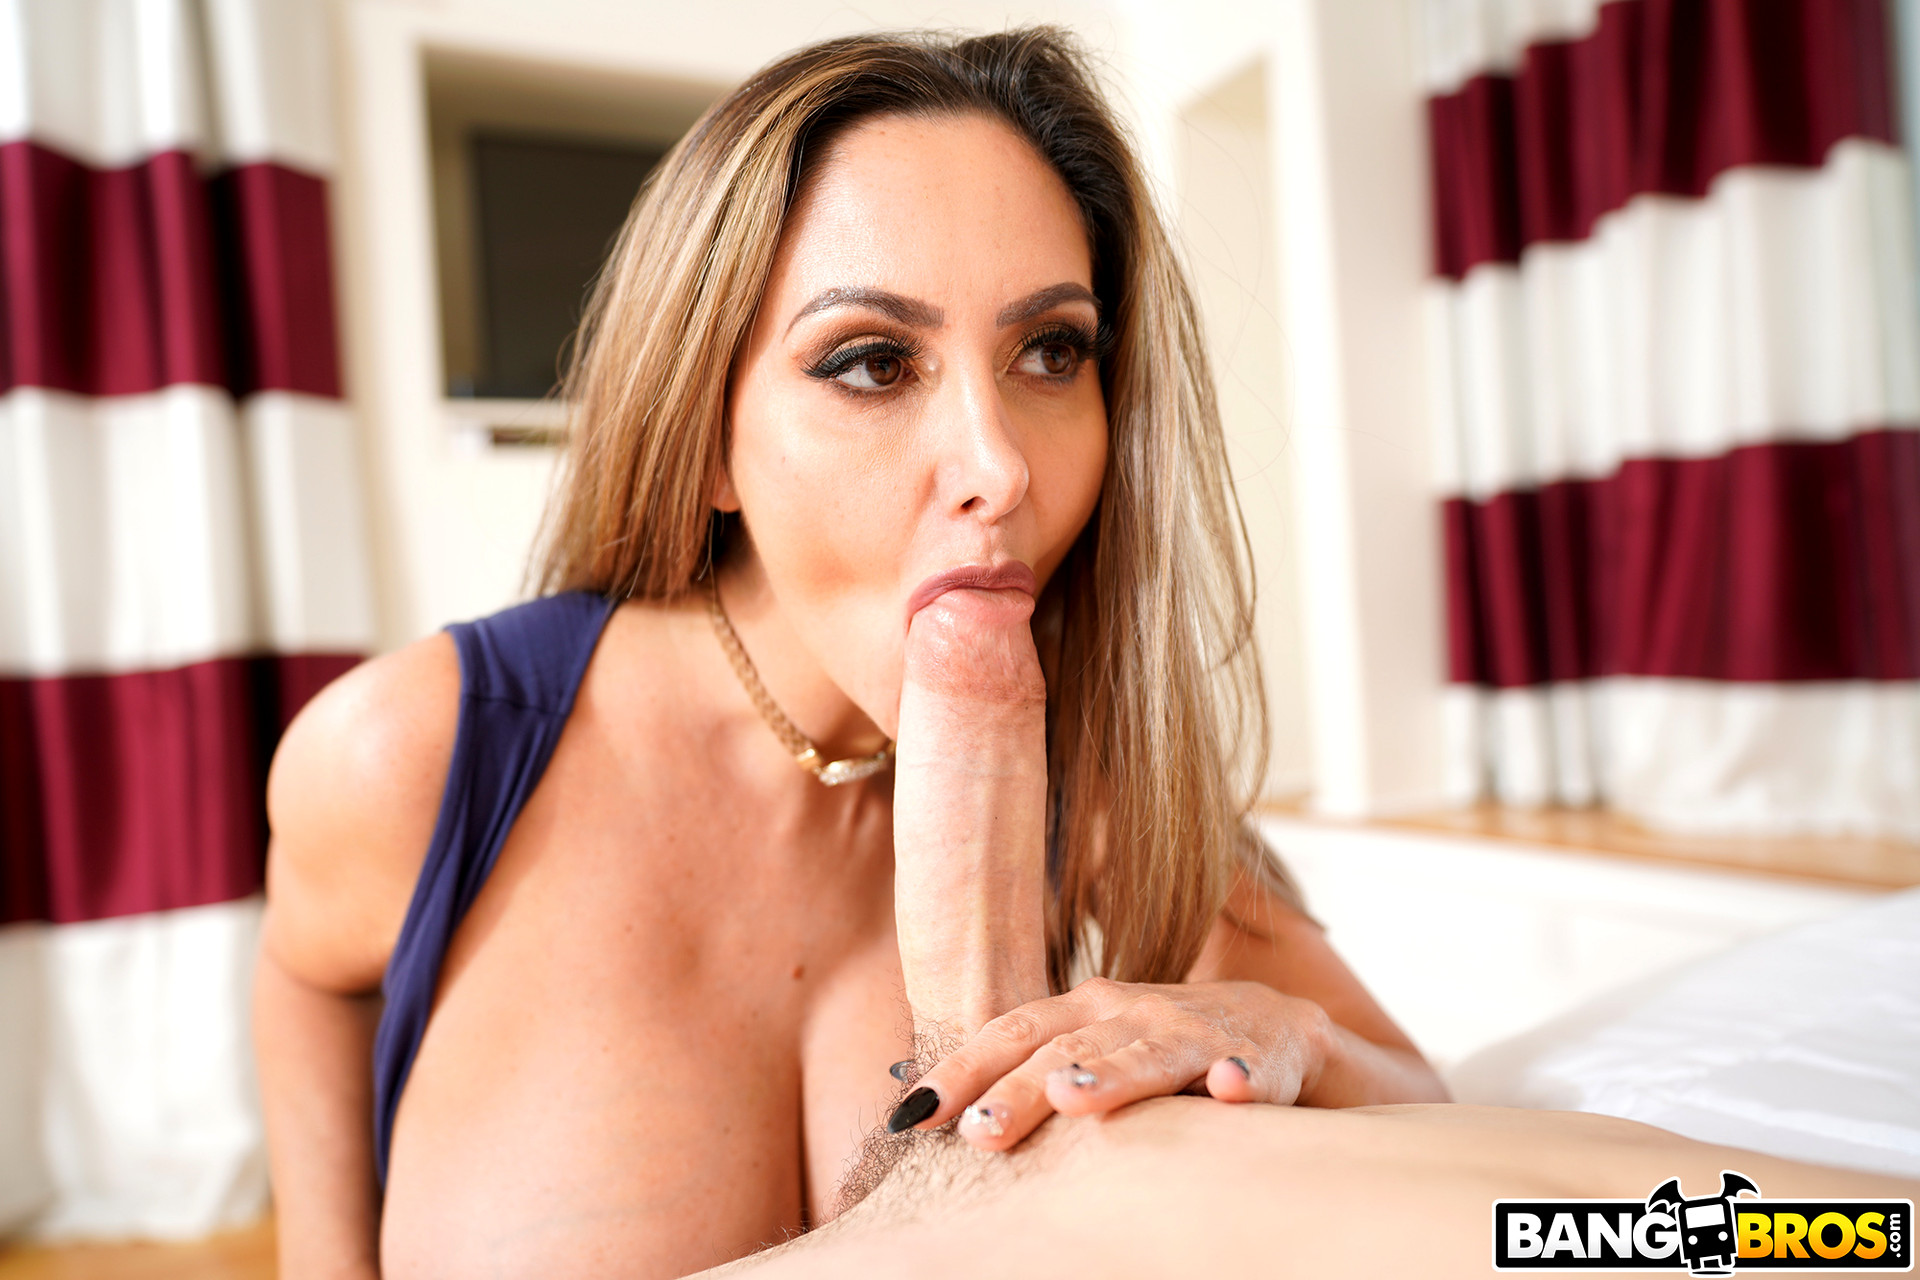 Babe Today Bangbros Network Ava Addams Webcam Milf Mature -4972